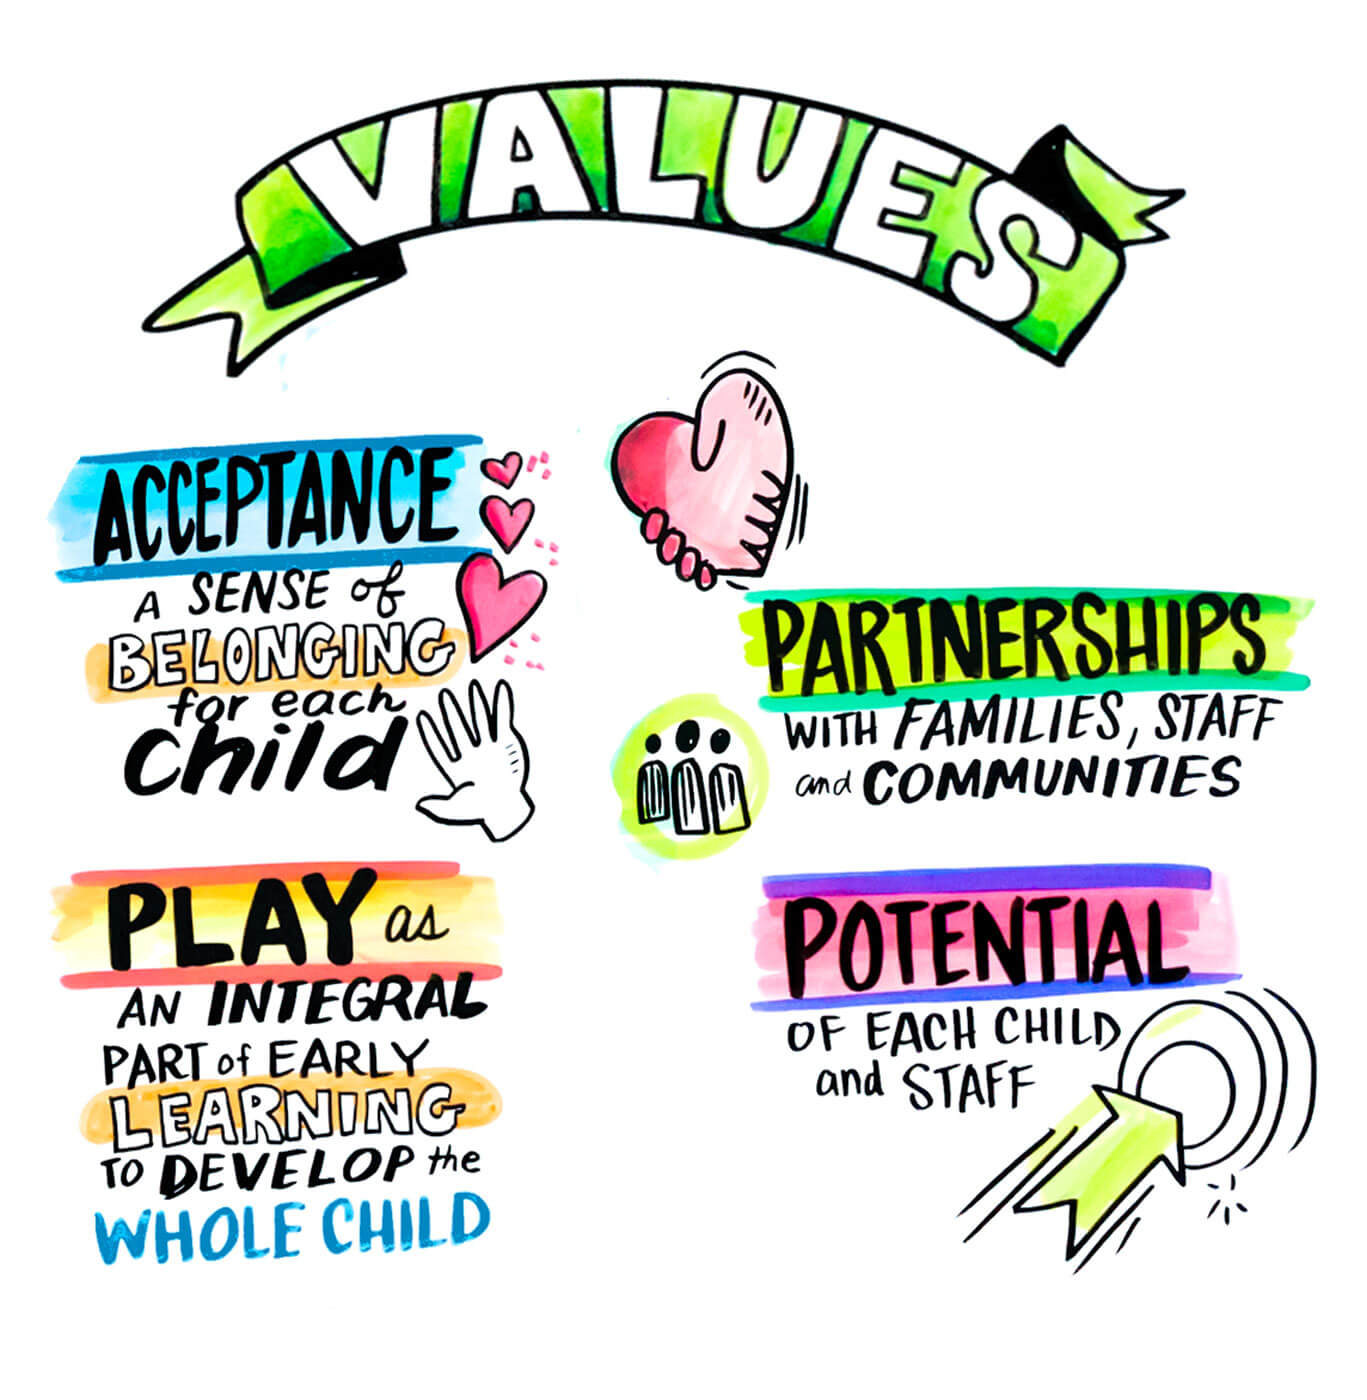 Our Values:     Acceptance: a sense of belonging for each child.     Play: as an integral part of early learning to develop the whole child.     Potential: of each child and staff.     Partnerships: with families, staff and our community